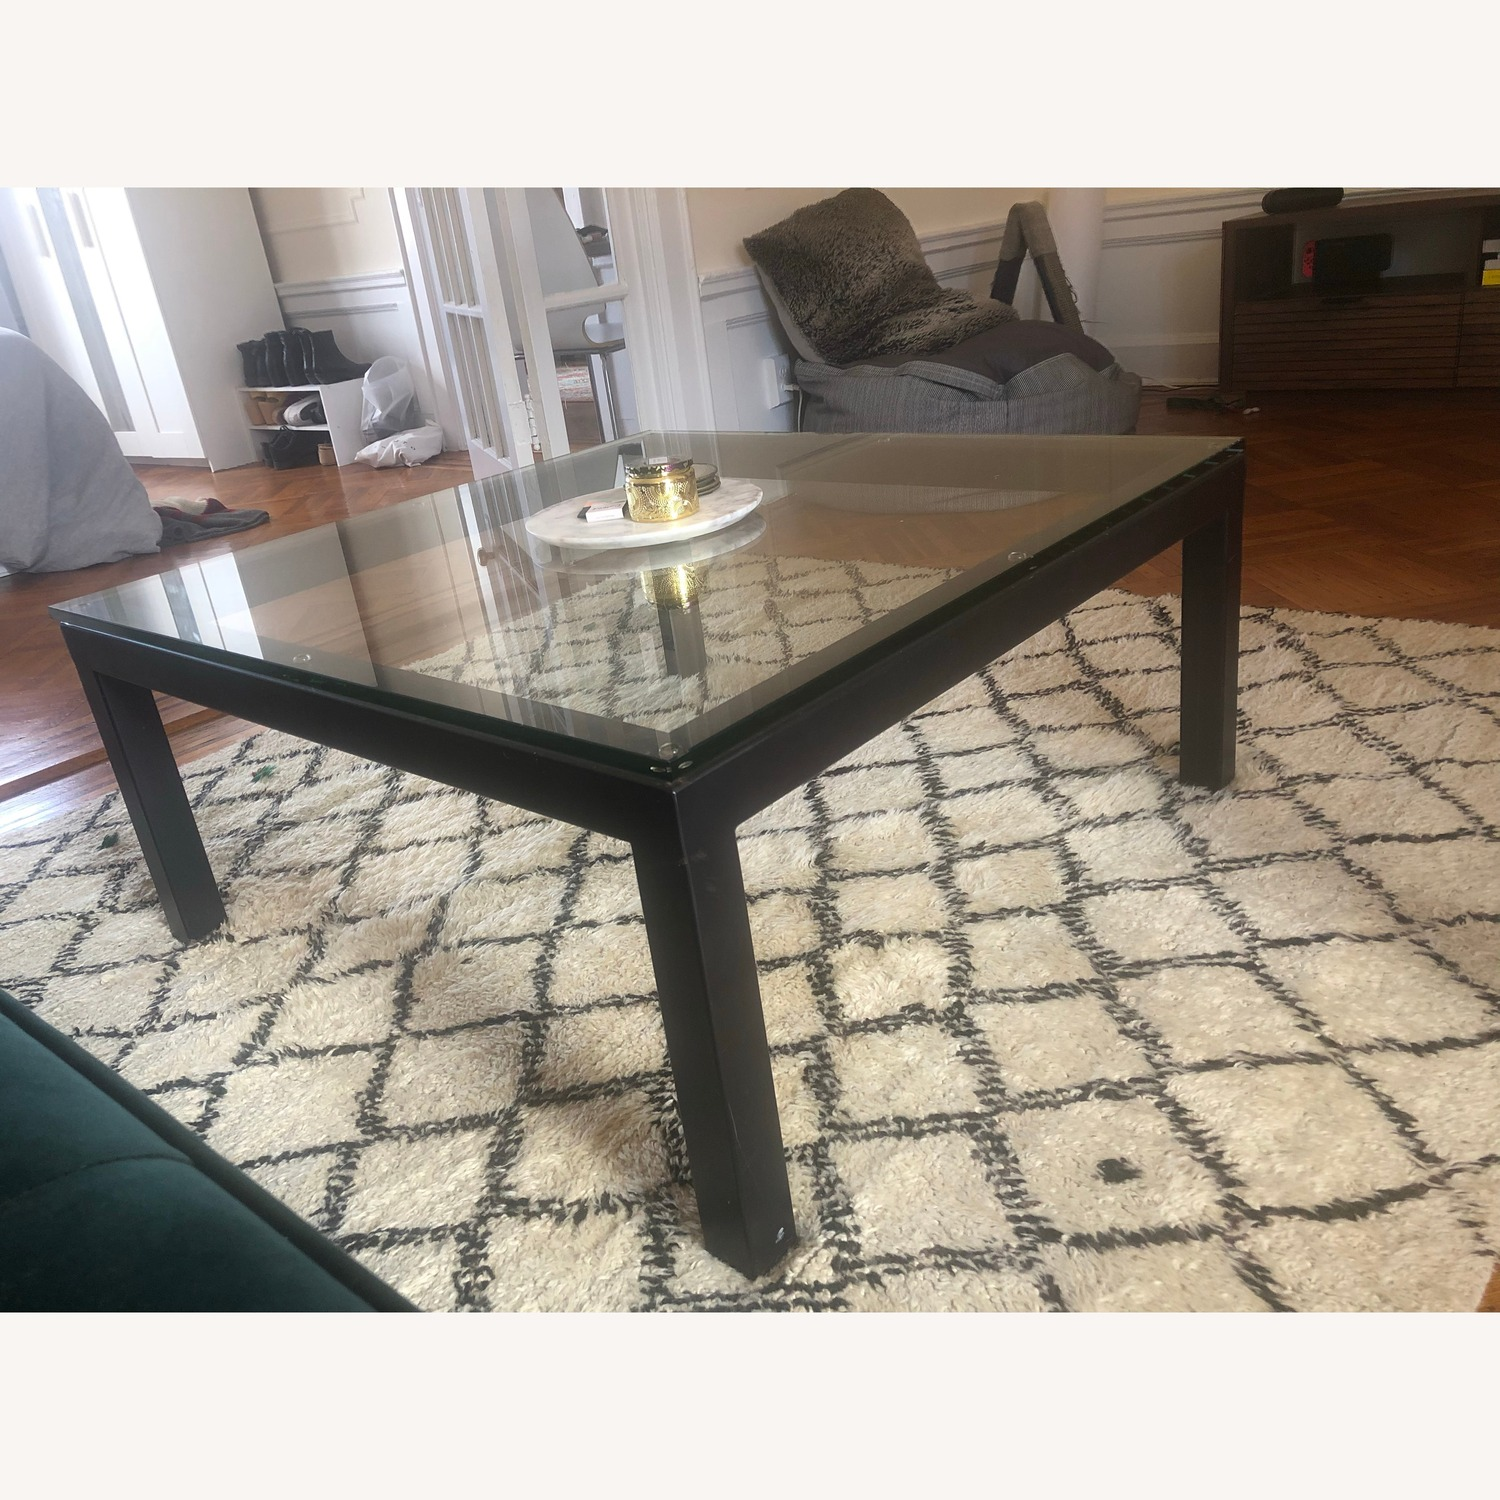 Crate & Barrel Sturdy & Elegant Glass Coffee Table - image-3